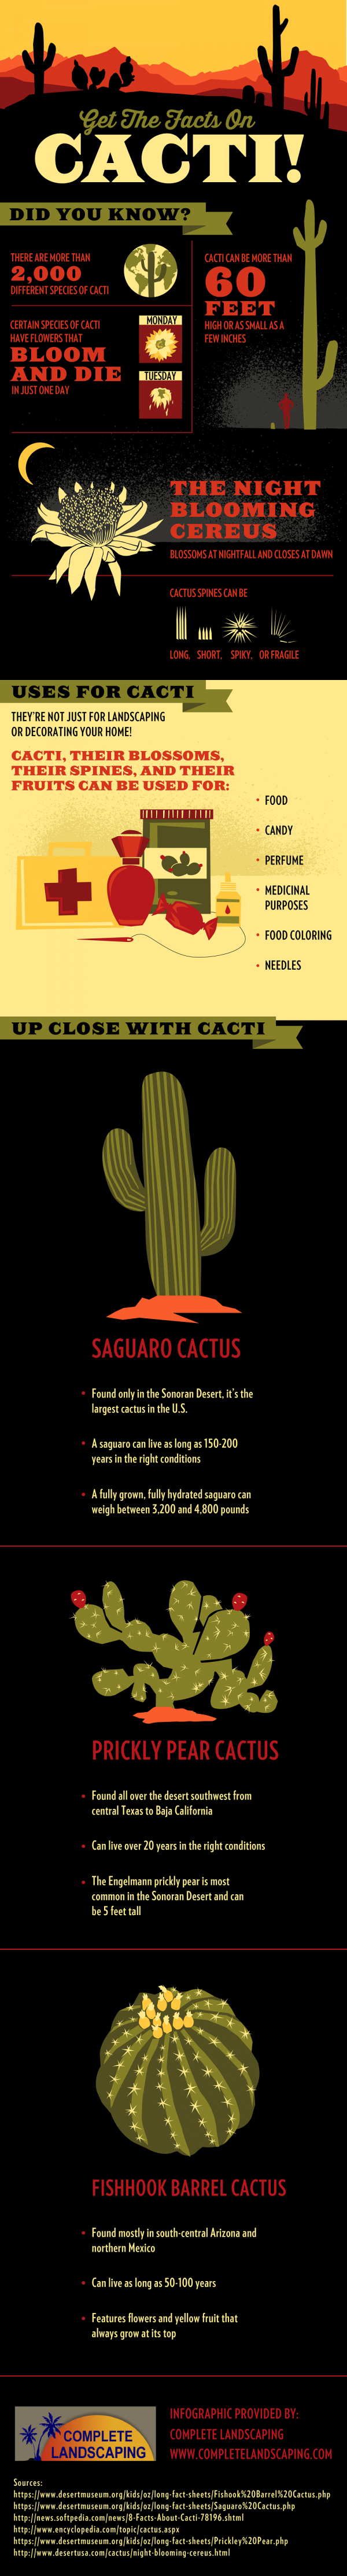 Get the Facts on Cacti!